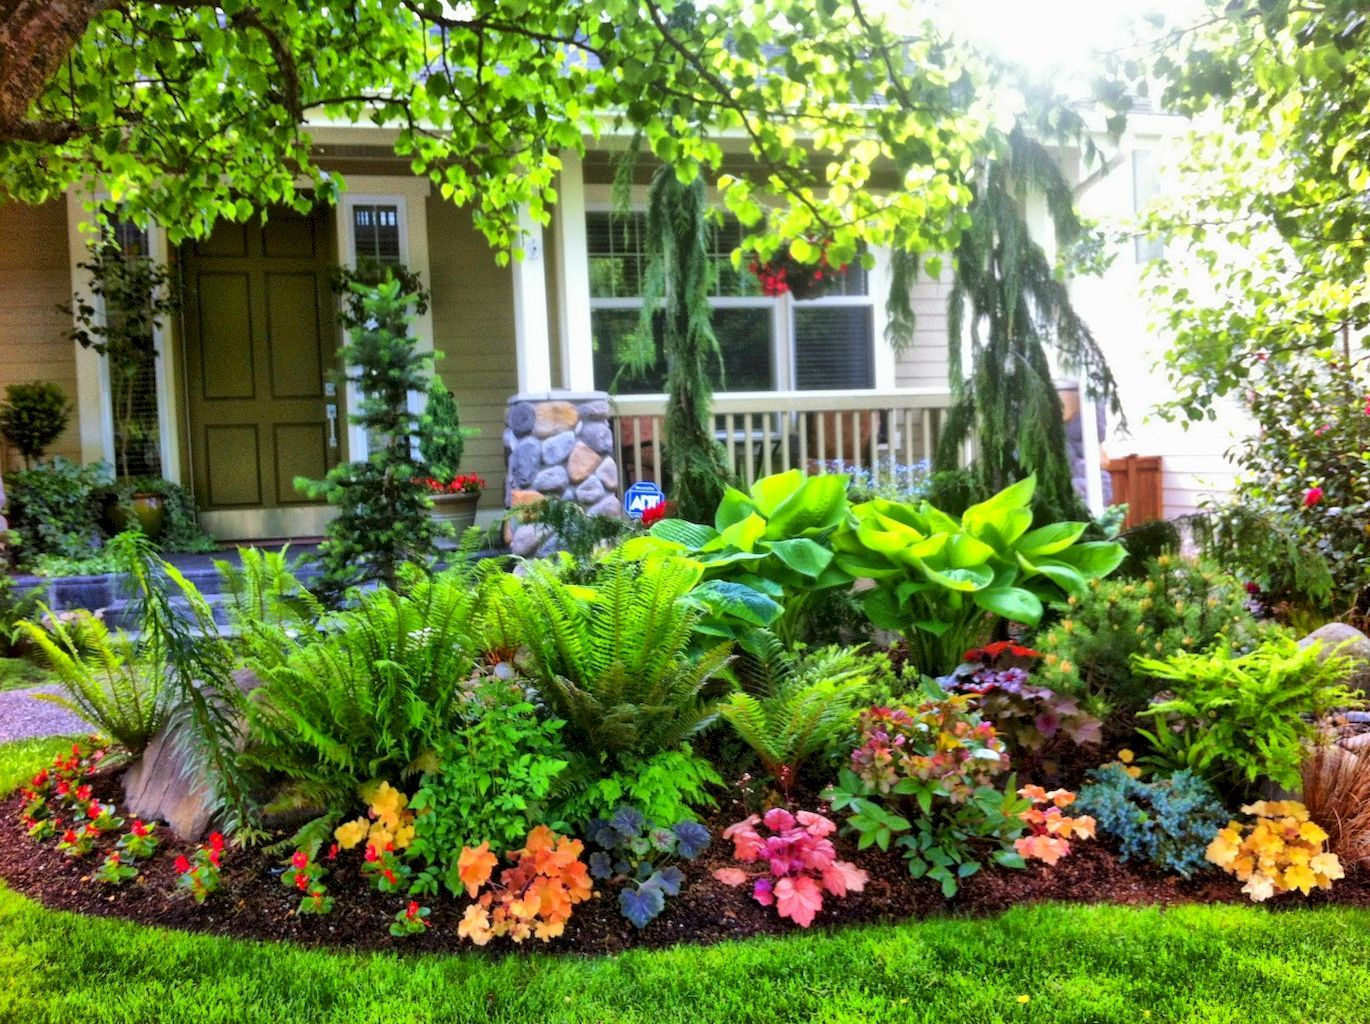 Gorgeous 45 Fresh And Beautiful Front Yard Landscaping Ideas On A Budget Roomodeling